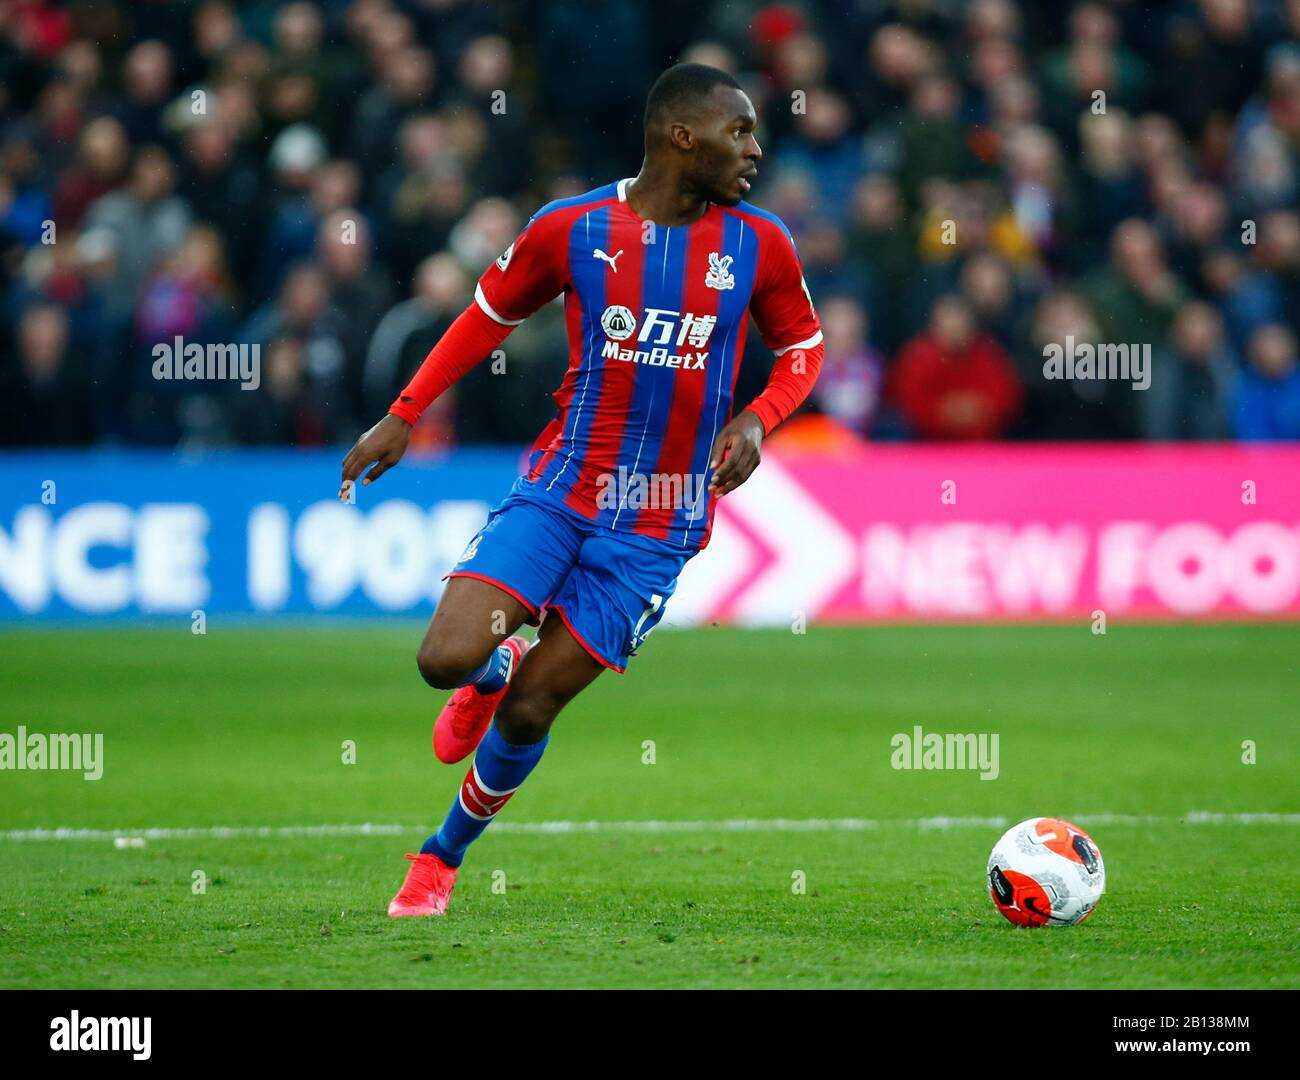 LONDON, UNITED KINGDOM. FEBRUARY 22 Crystal Palace's Christian Benteke during English Premier League between Crystal Palace and Newcastle United at Selhurst Park Stadium, London, England on 22 February 2020 Credit: Action Foto Sport/Alamy Live News Stock Photo